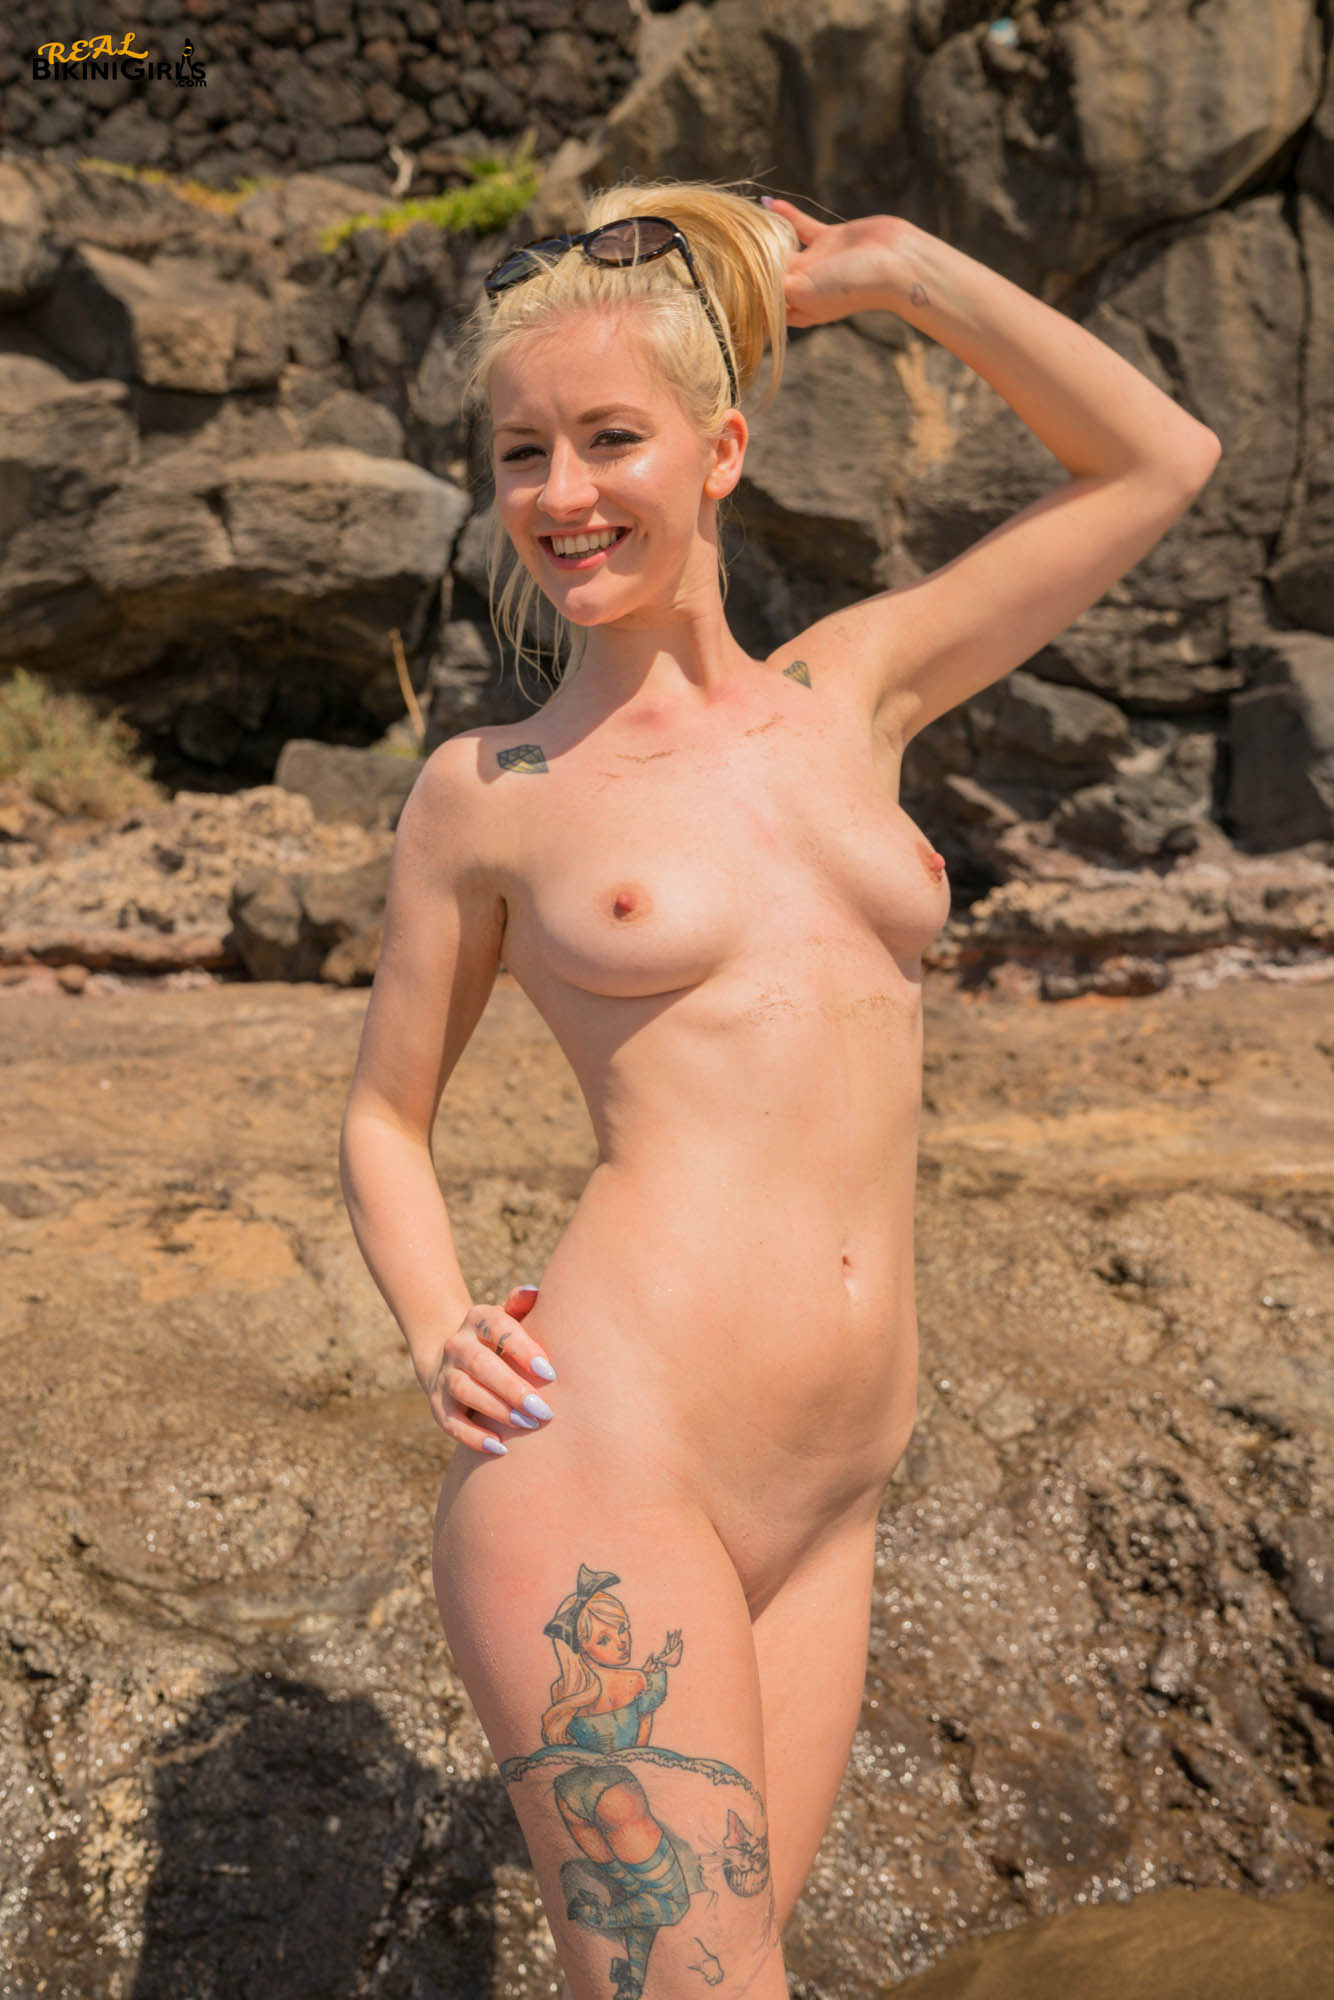 sexy short haired blonde with small tits having fun during beach vacation #5